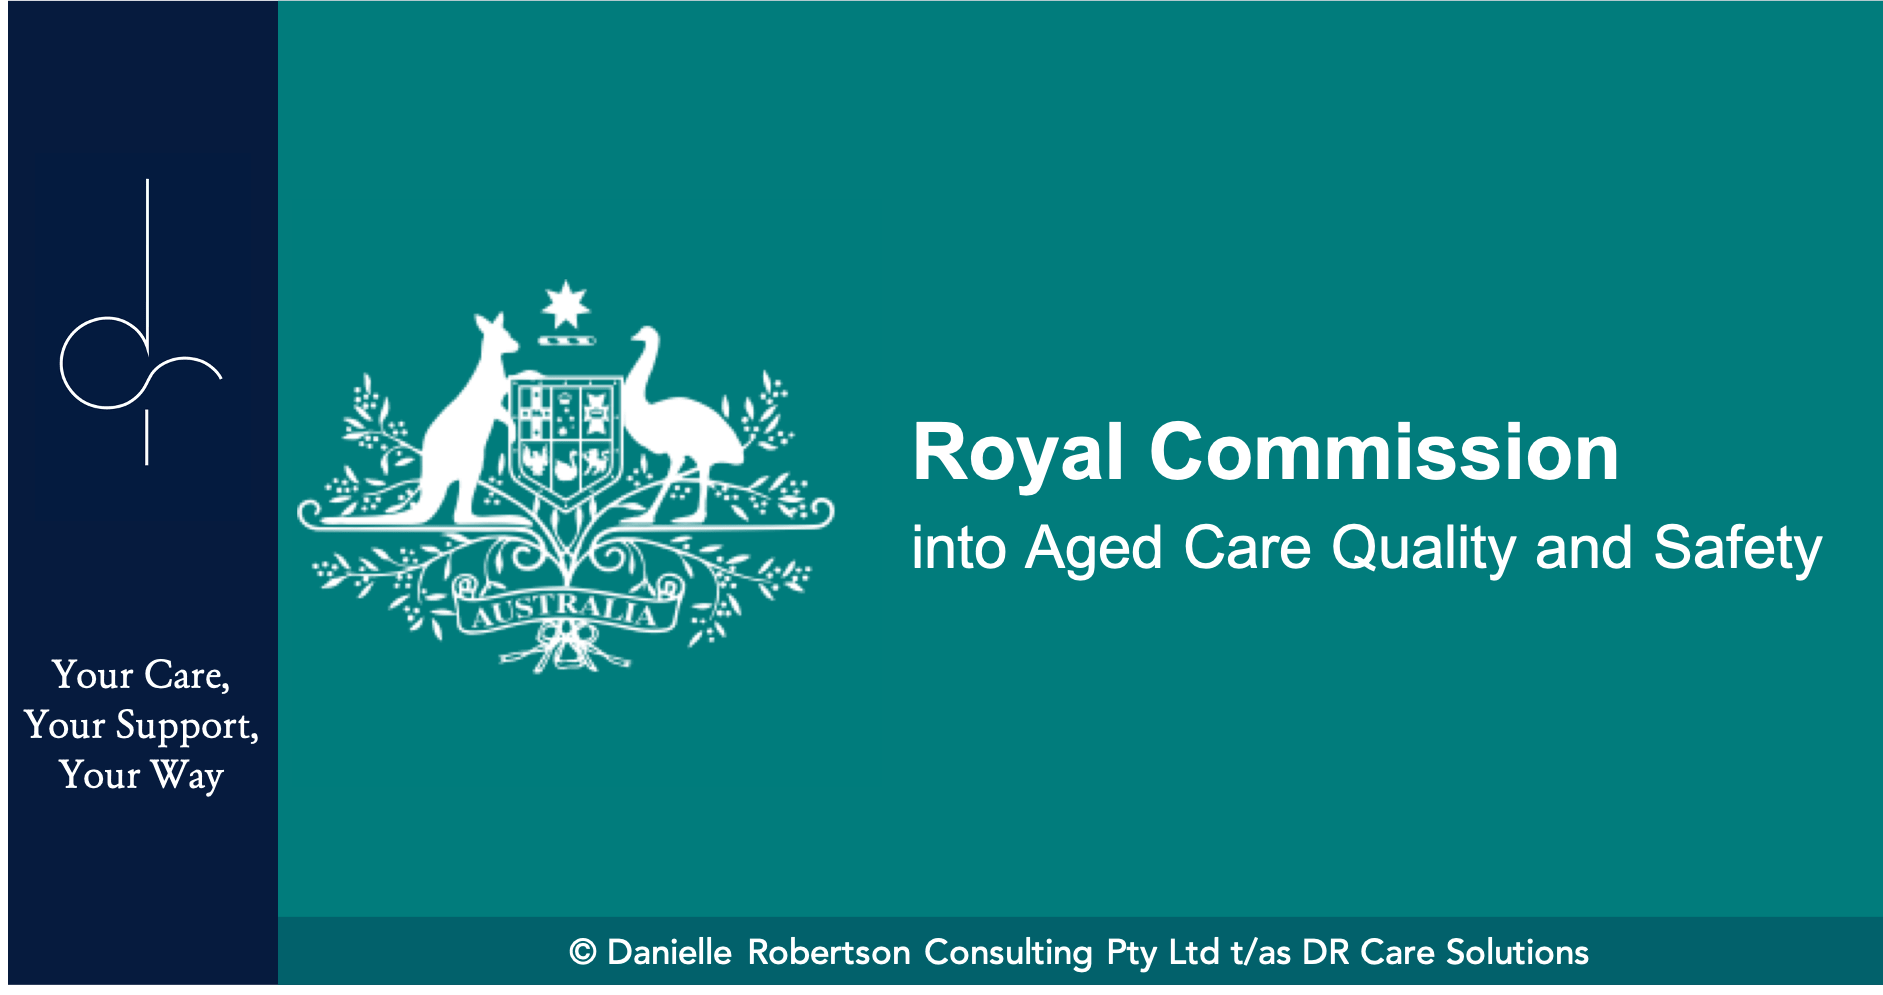 Royal Commission Into Aged Care Quality and Safety - Final Report